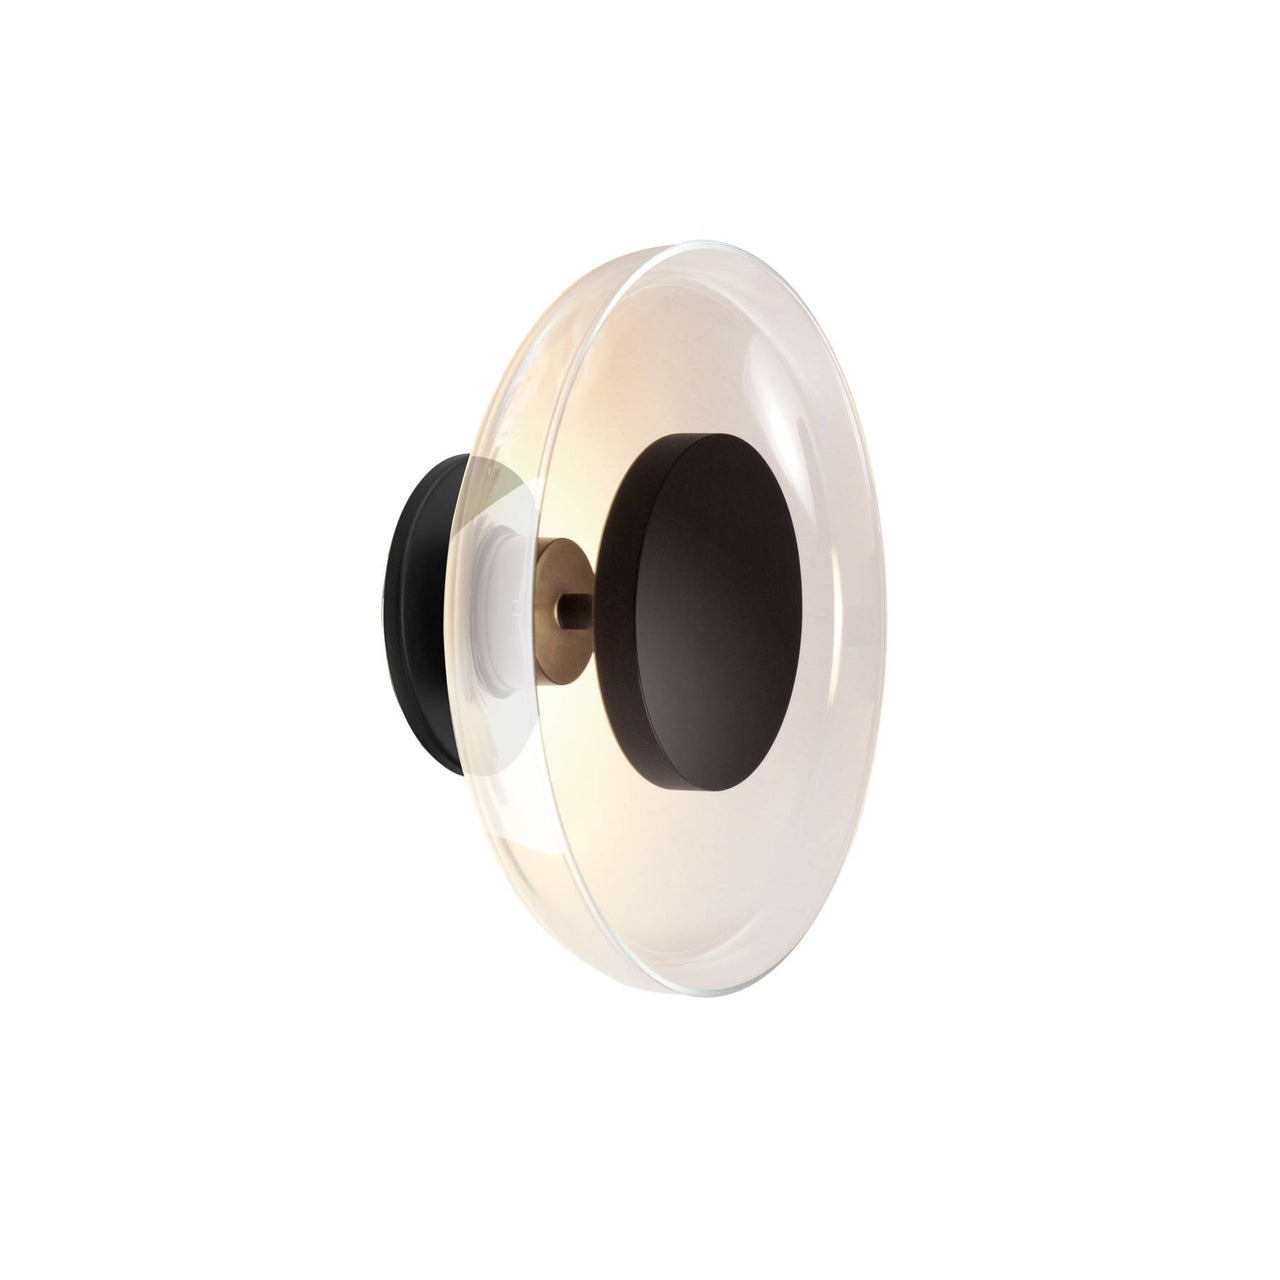 Aura Plus Wall Light: Translucent